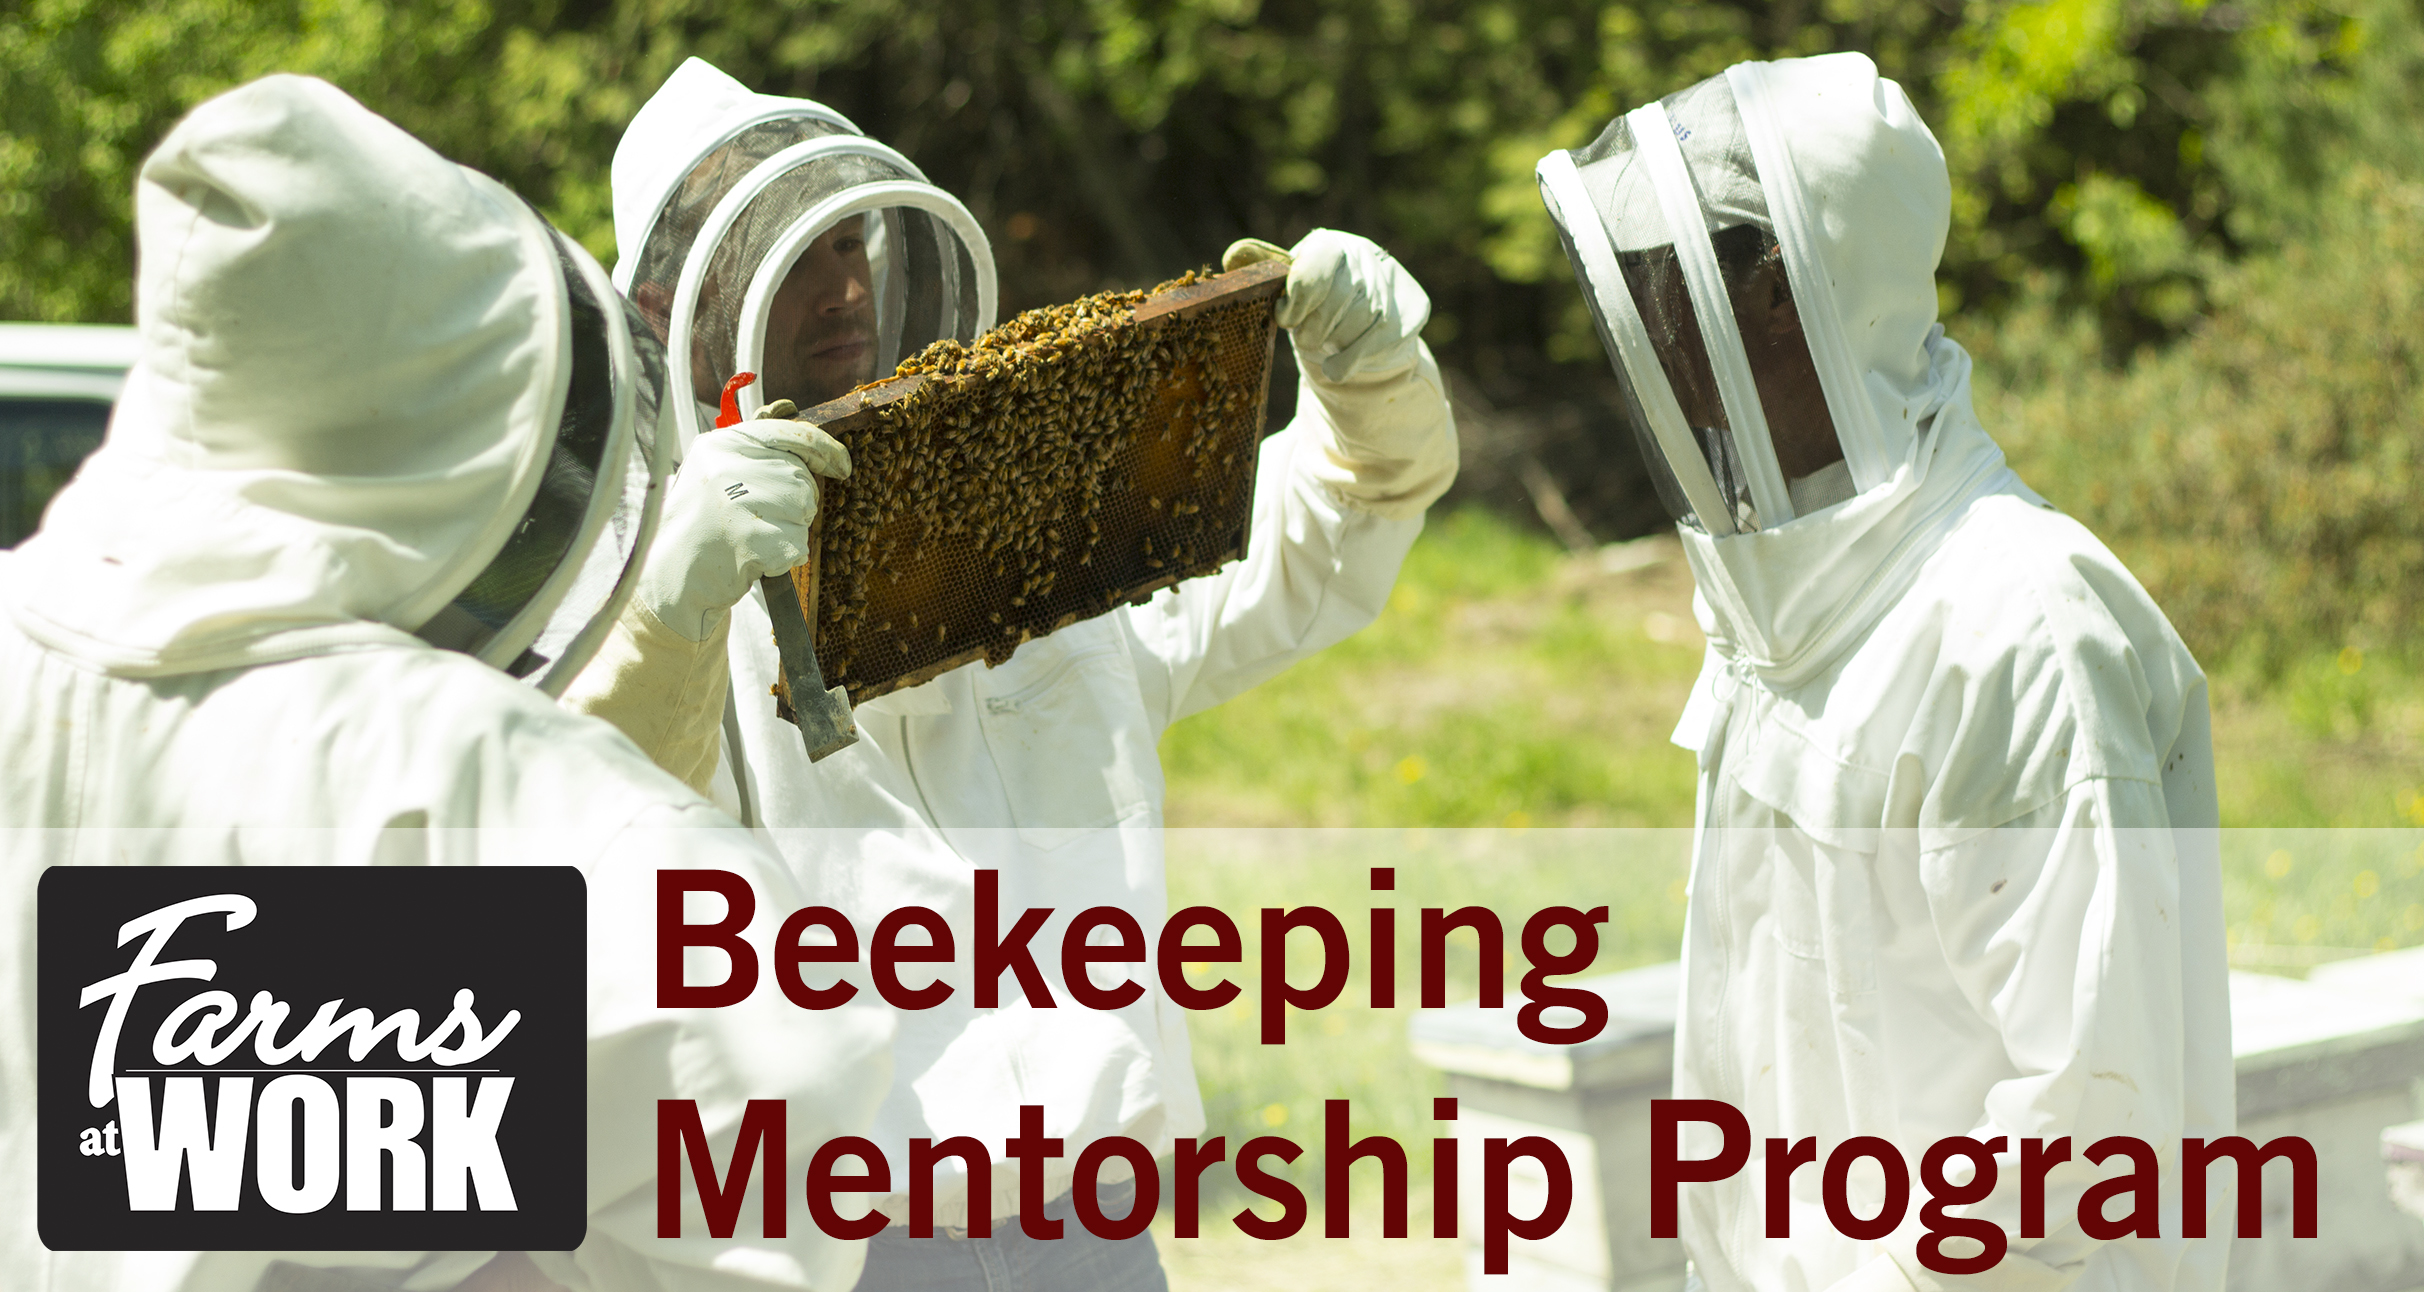 Beekeeping Mentorship - Checking Hives